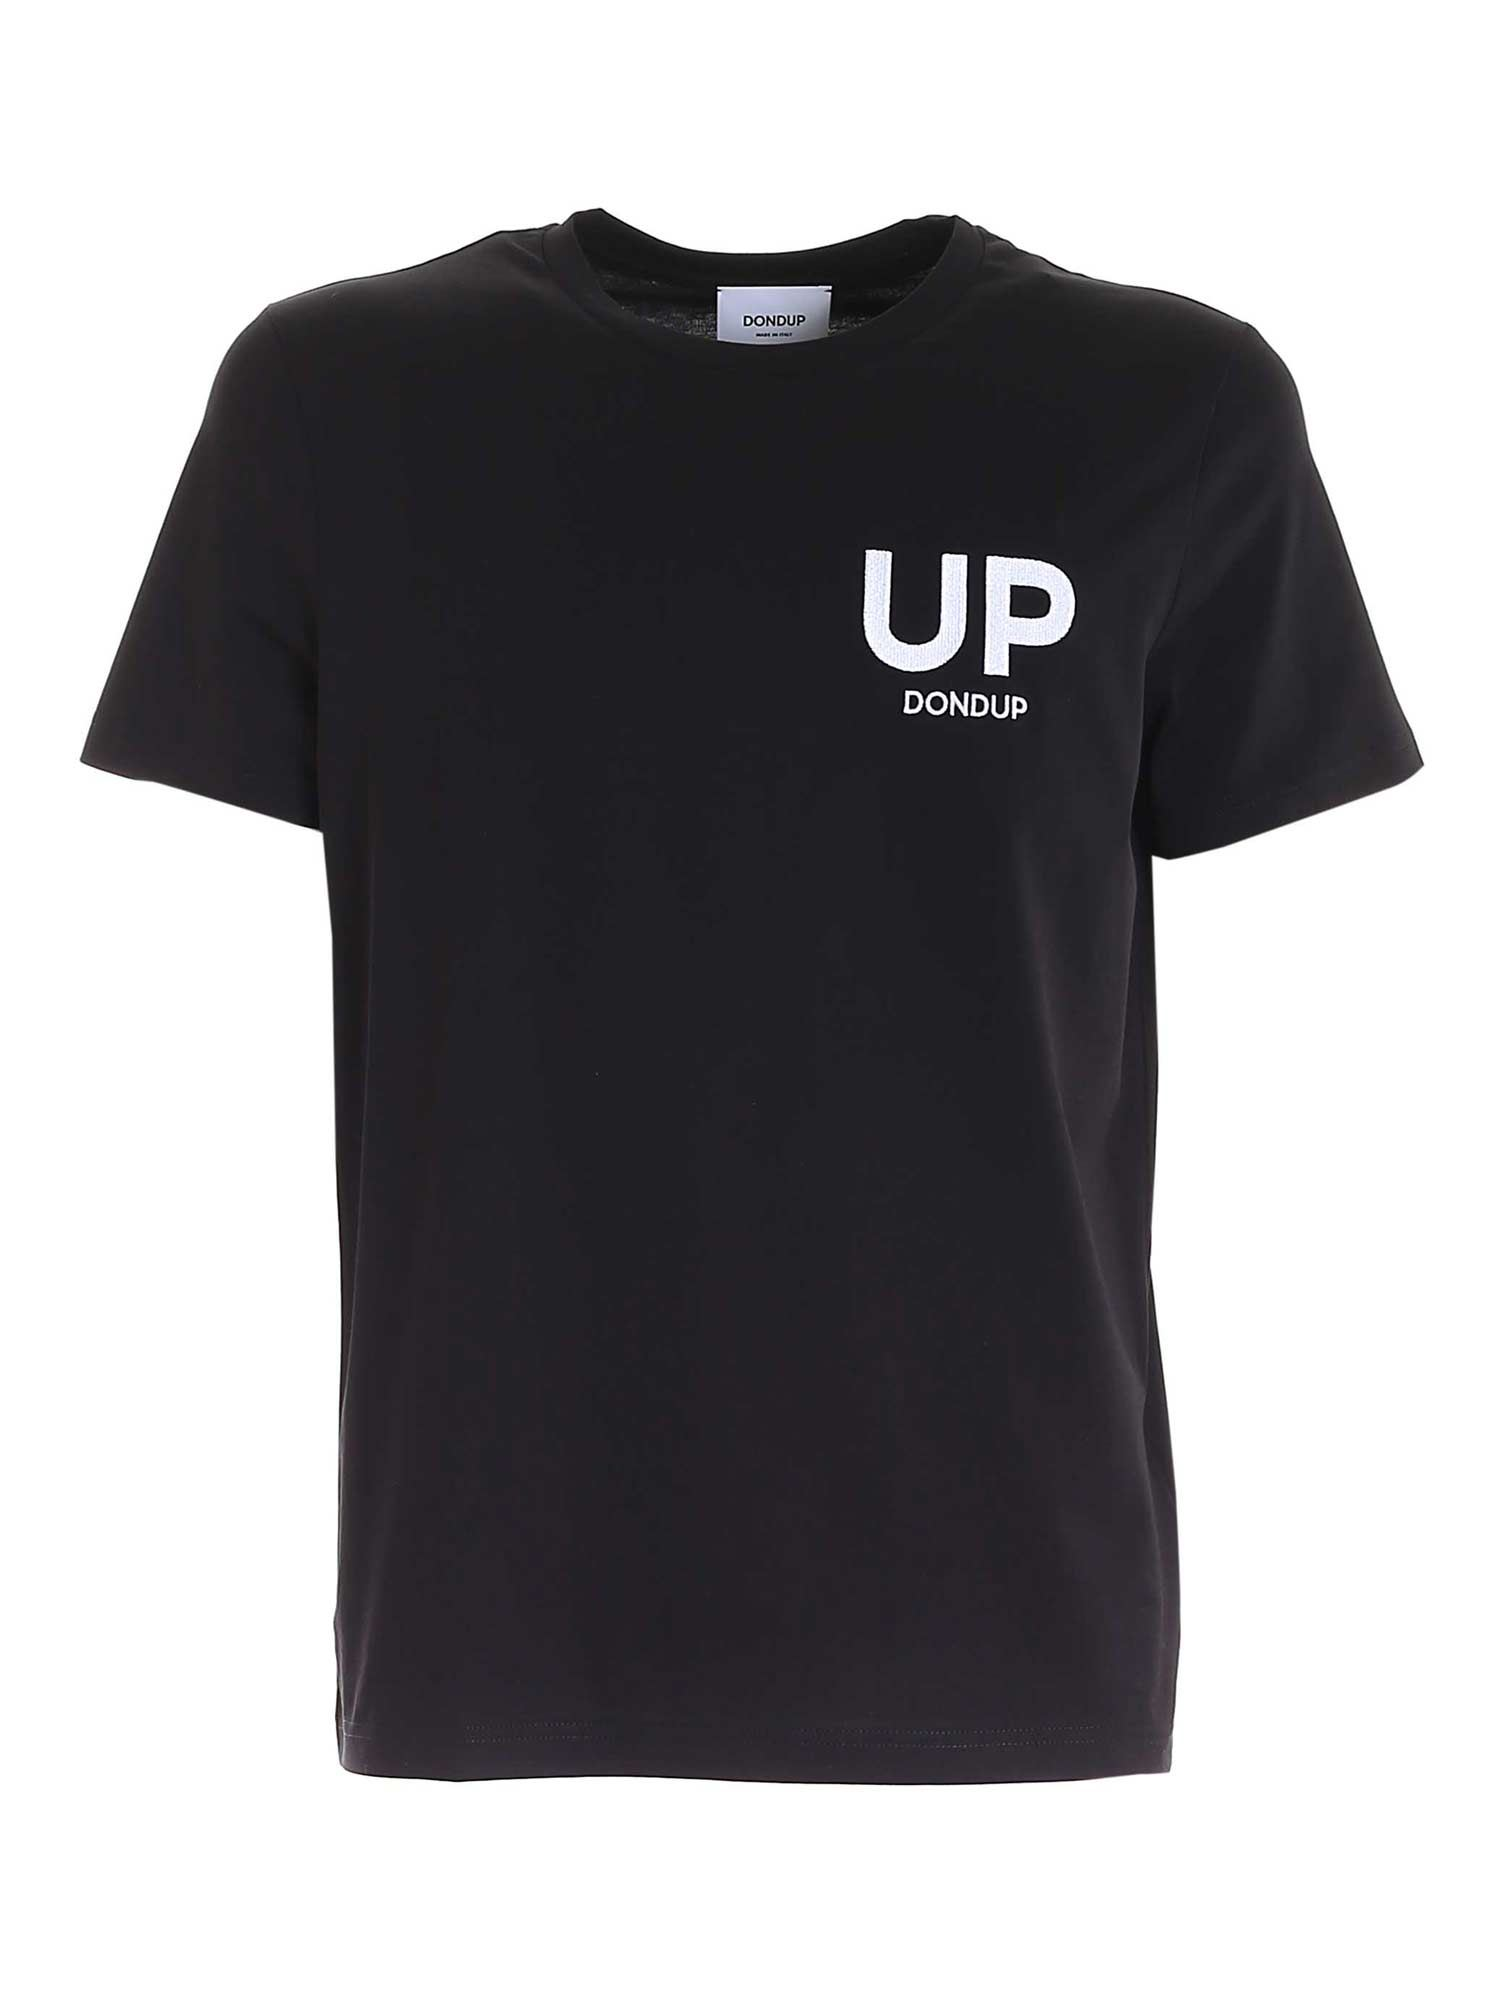 Dondup T-shirts LOGO EMBROIDERY T-SHIRT IN BLACK